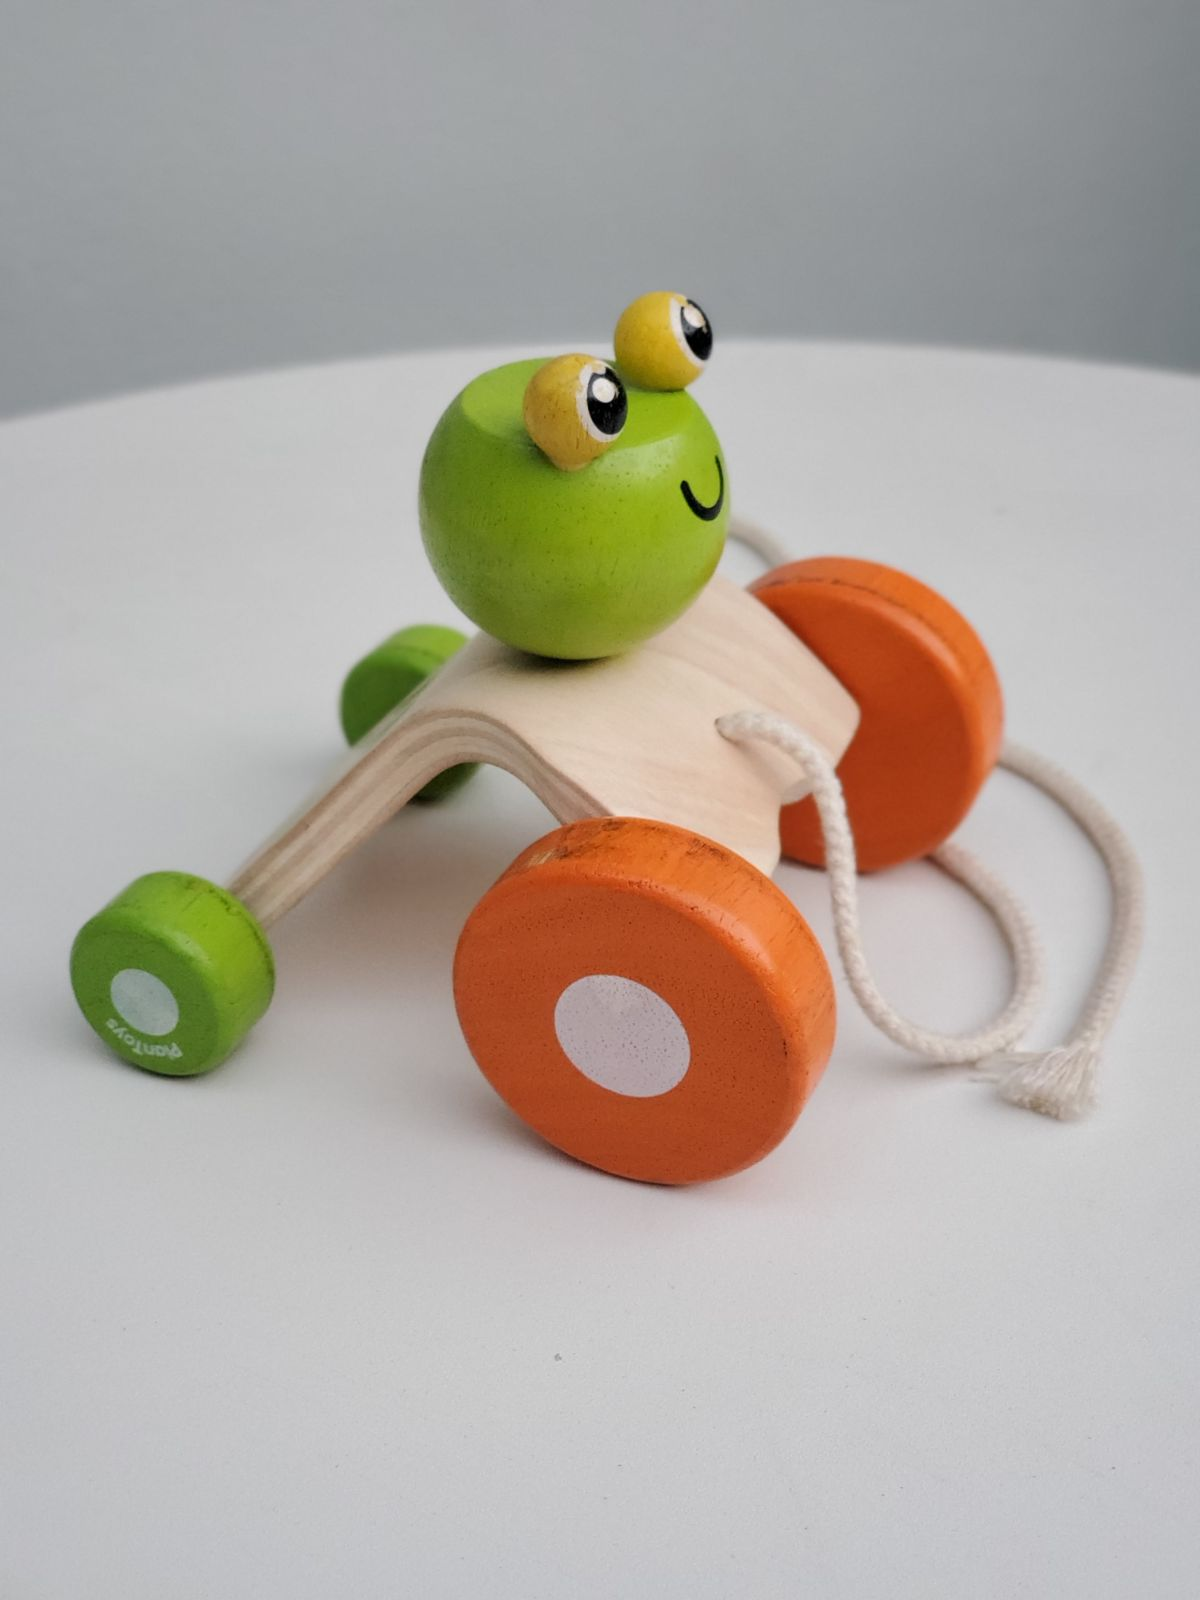 Plantoys jumping frog pull toy